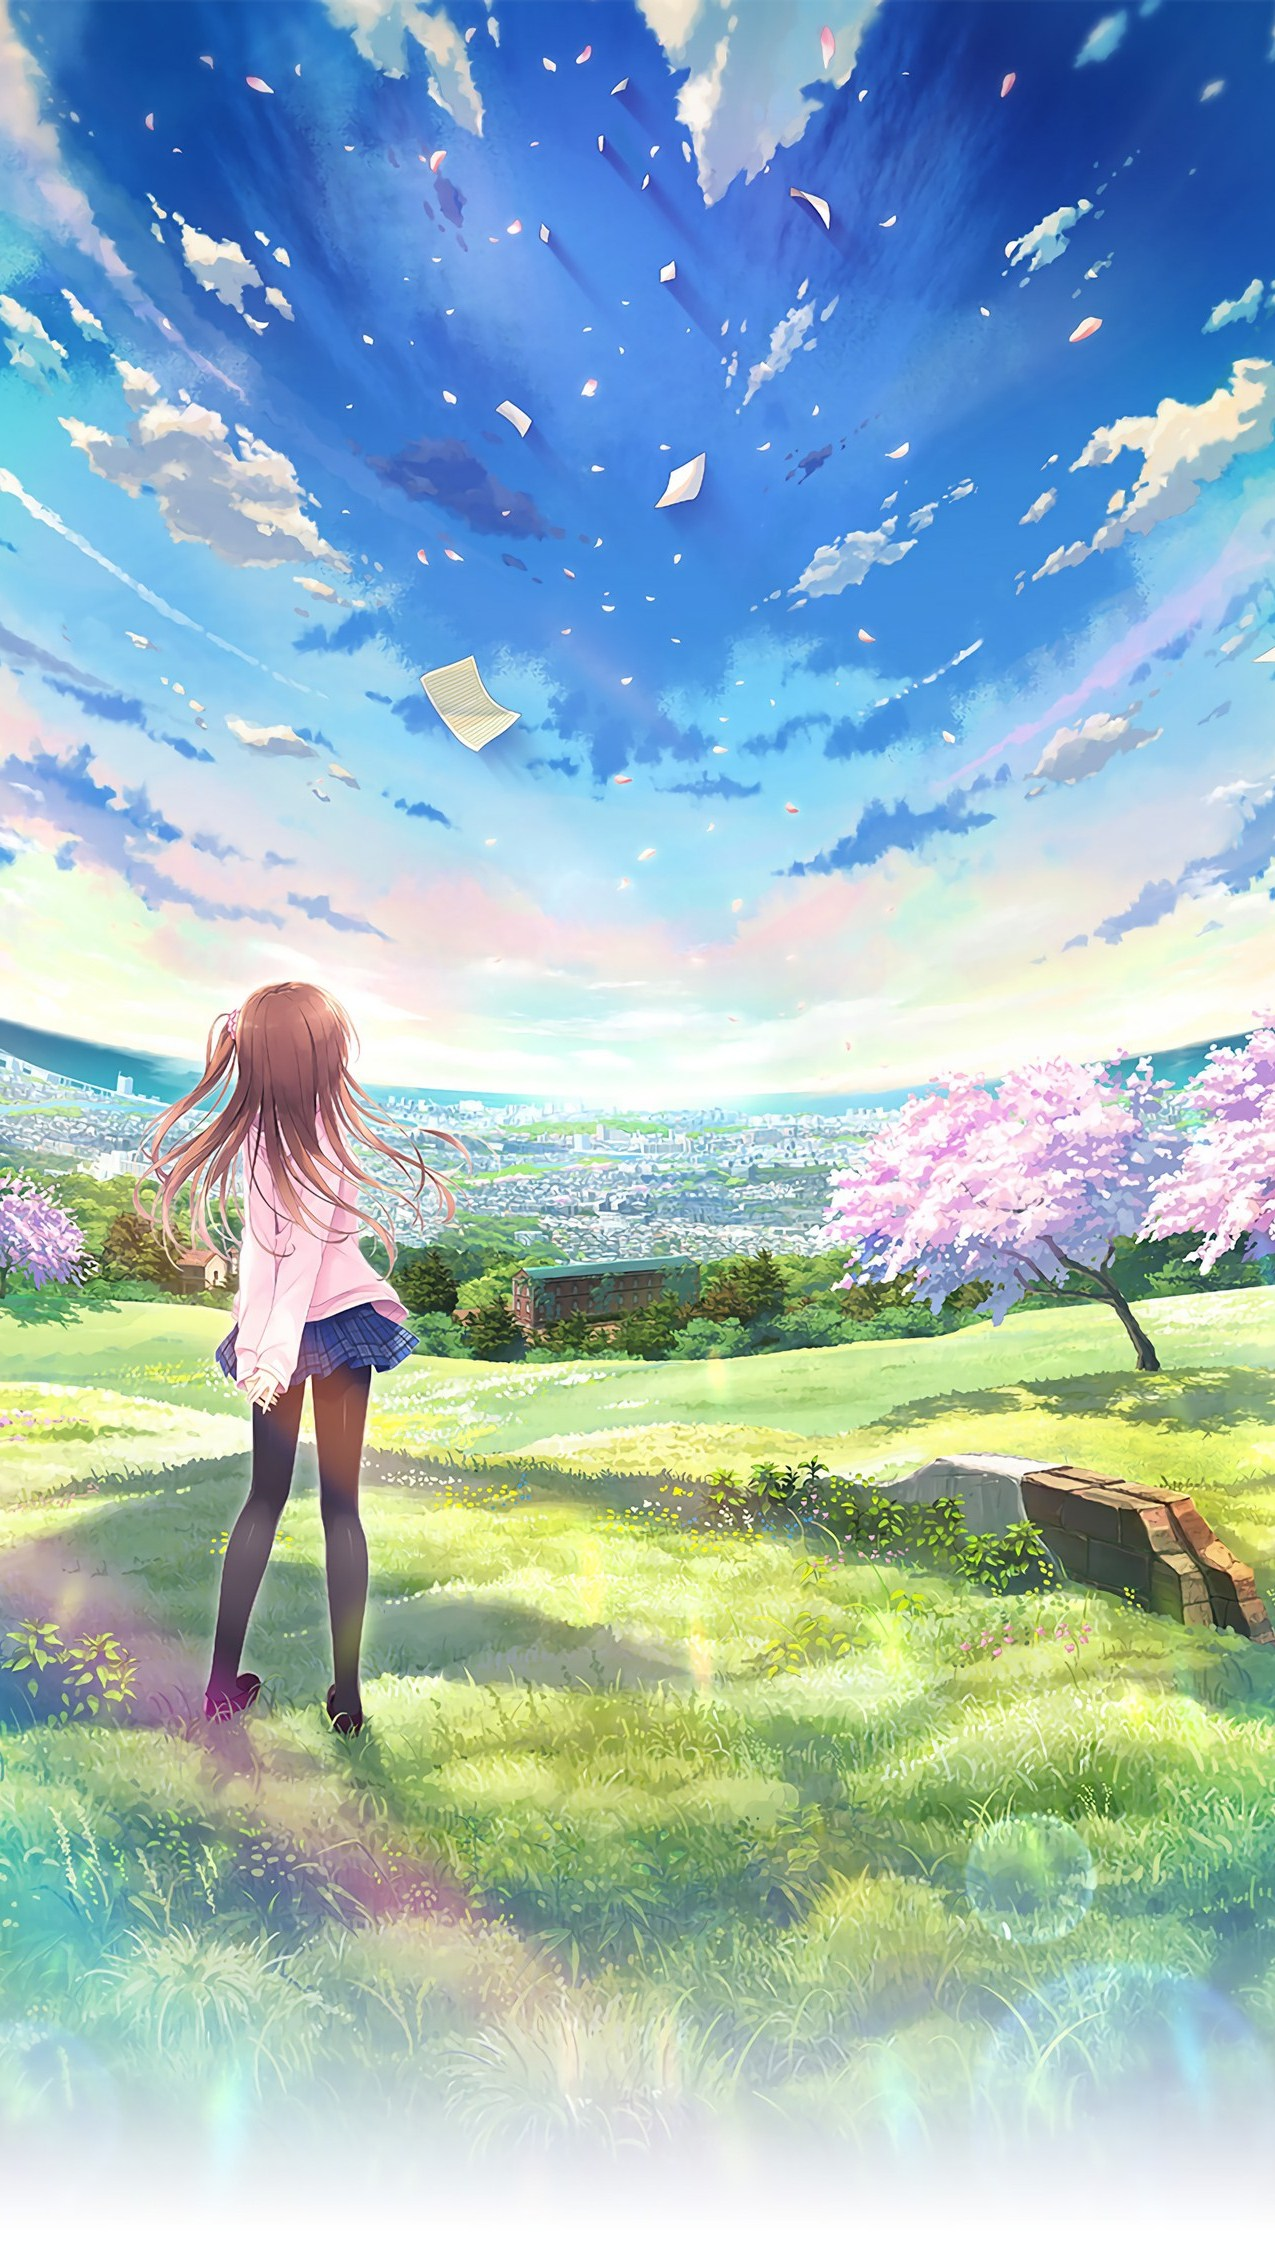 Anime World Beautiful Girl Sky Android Wallpaper - Beautiful Iphone Anime Wallpaper Hd , HD Wallpaper & Backgrounds